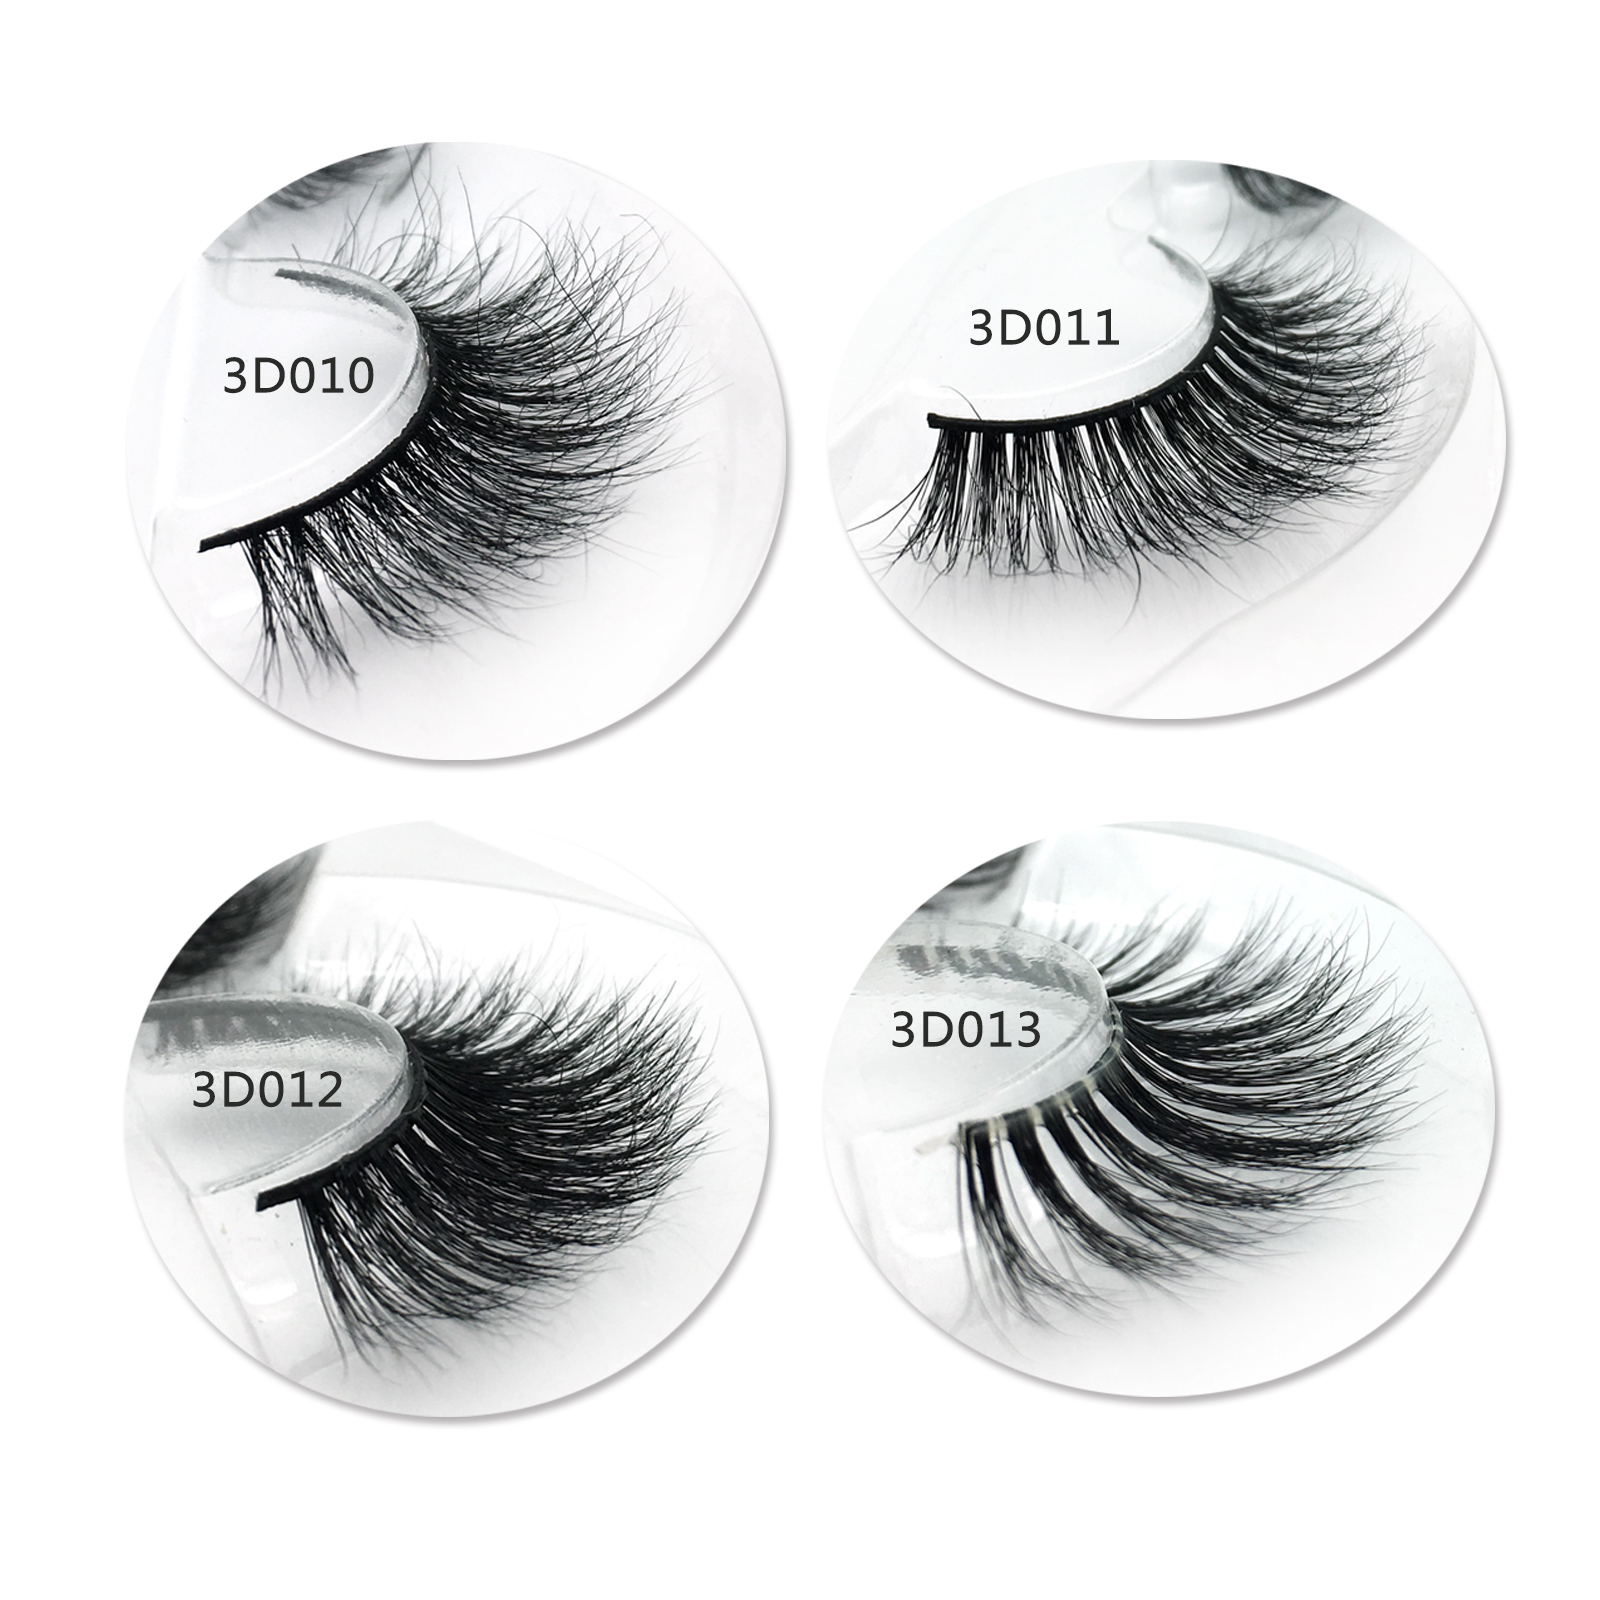 Best Eyelash Supplier Sell Premium 3D Real Mink Fur Strip Eyelashes with Customized Box in the US  YY79